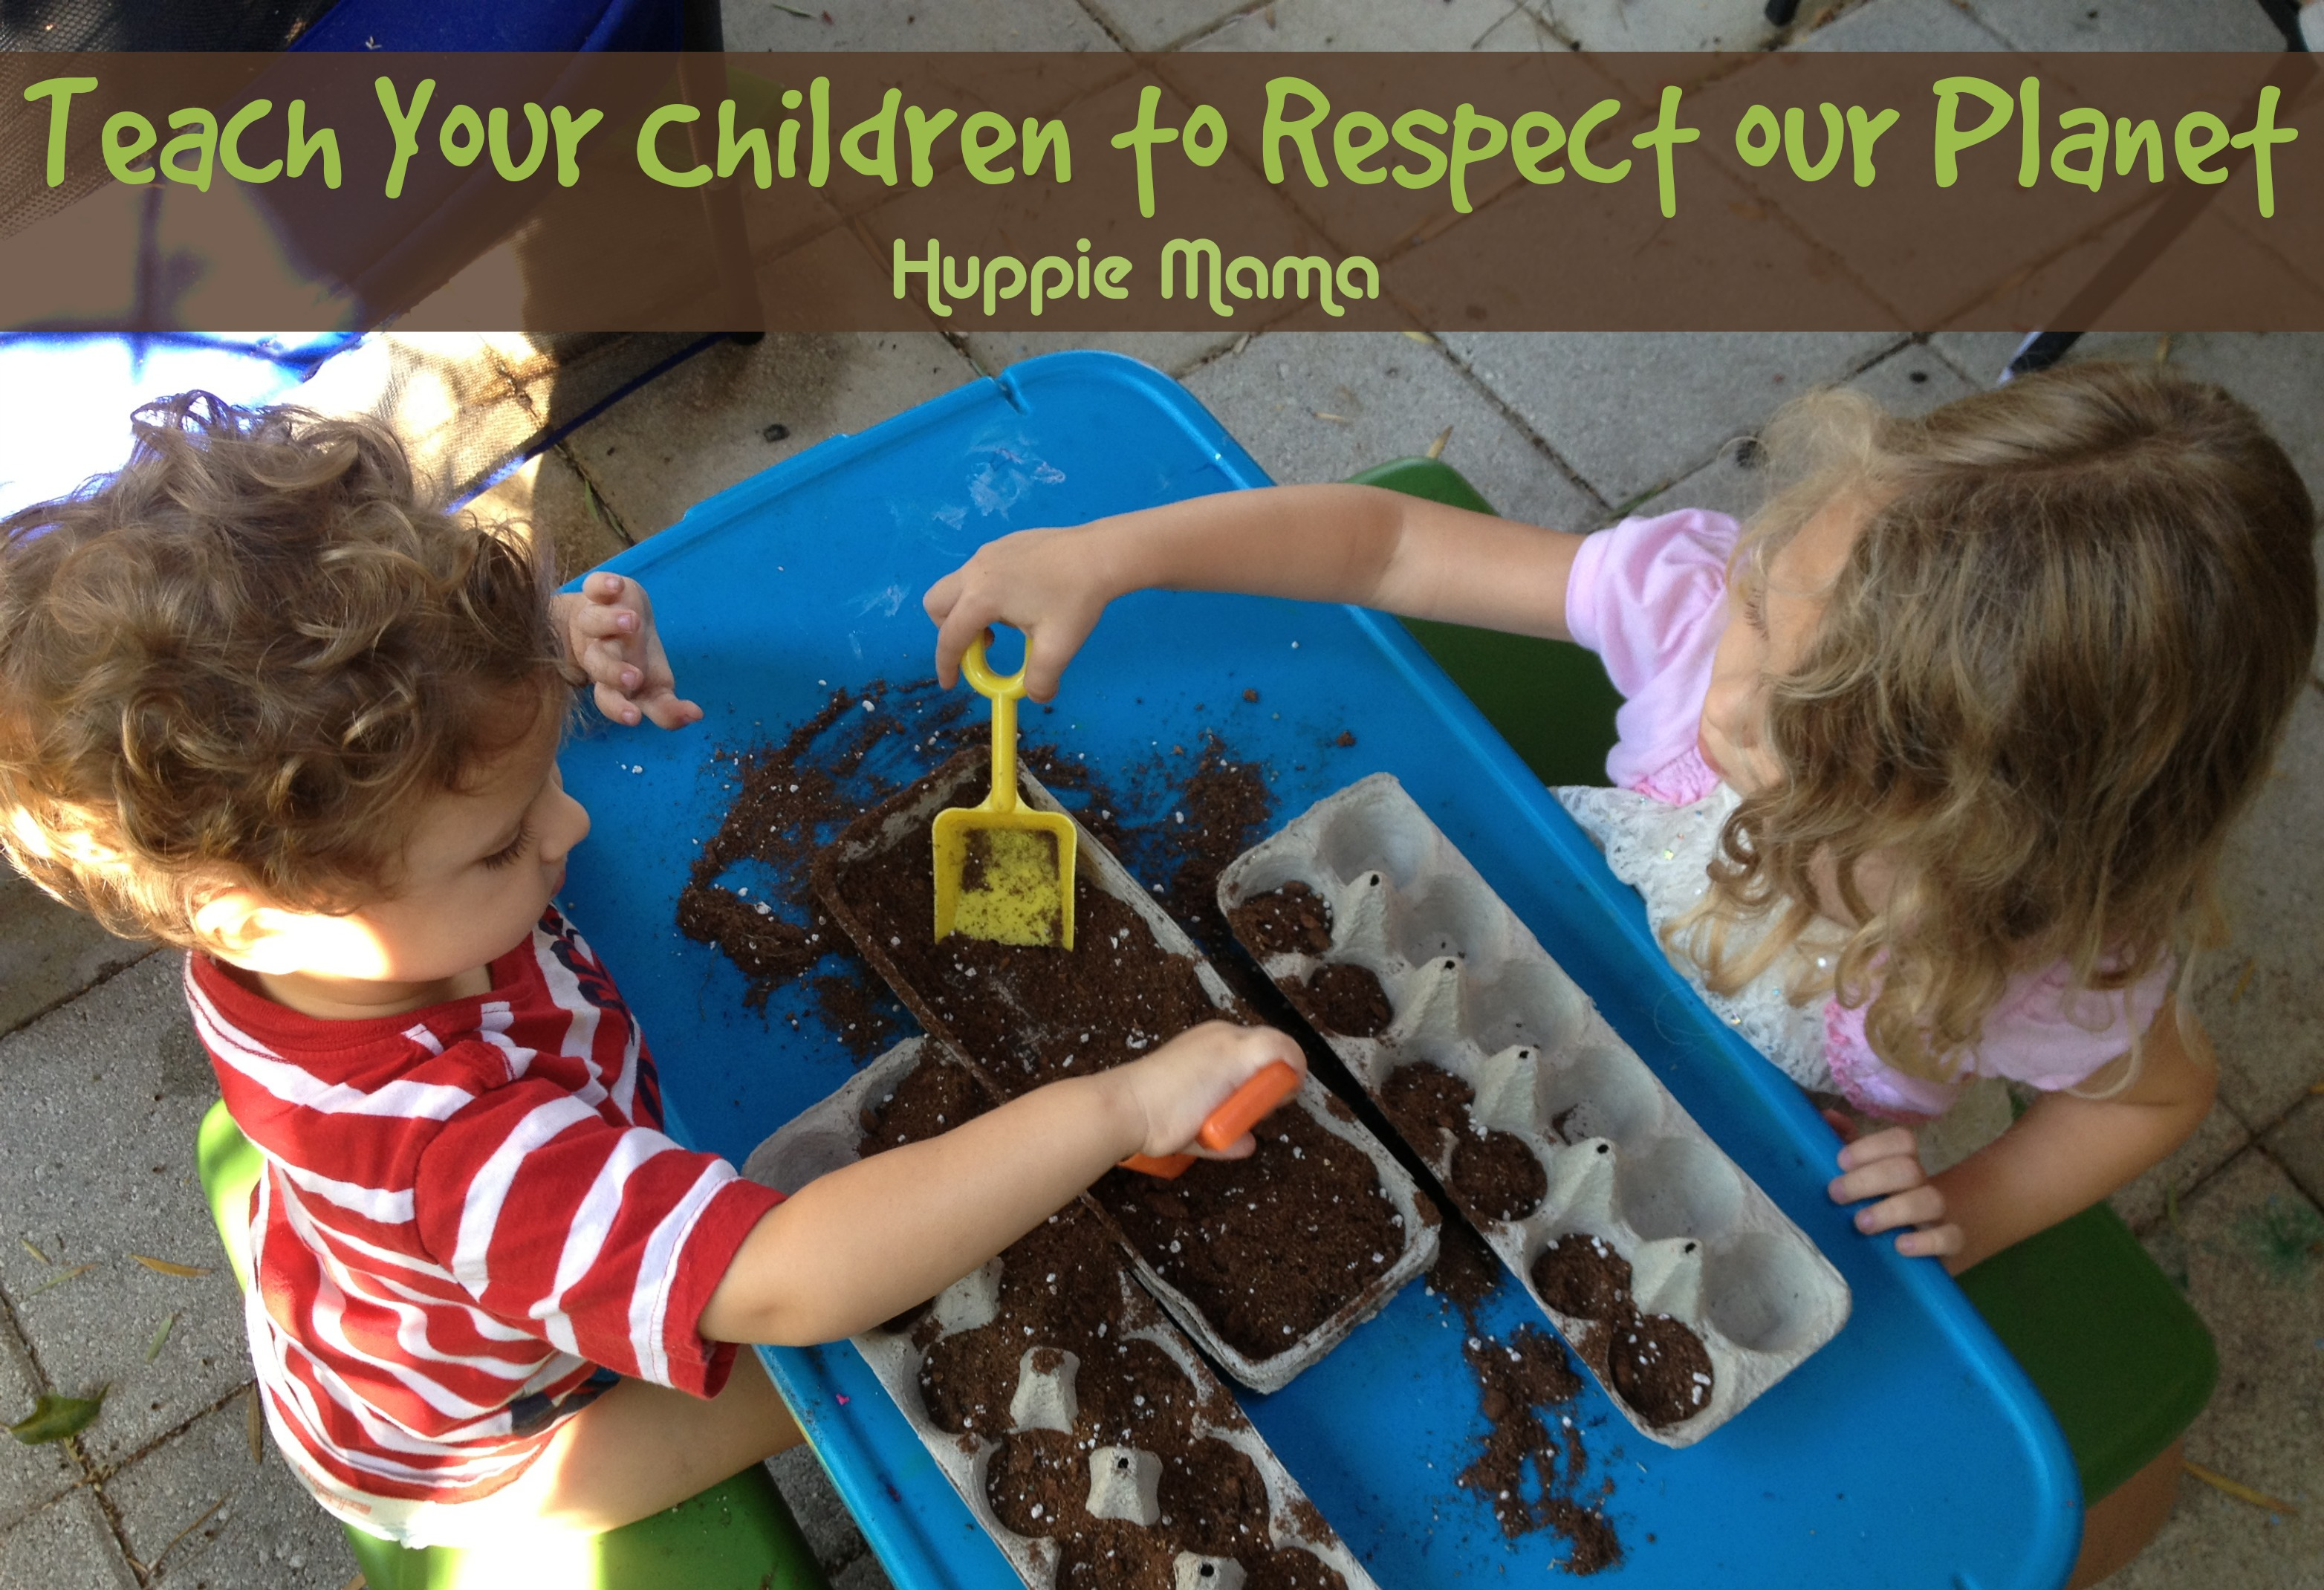 5 Ways to Teach Your Children to Respect our Planet